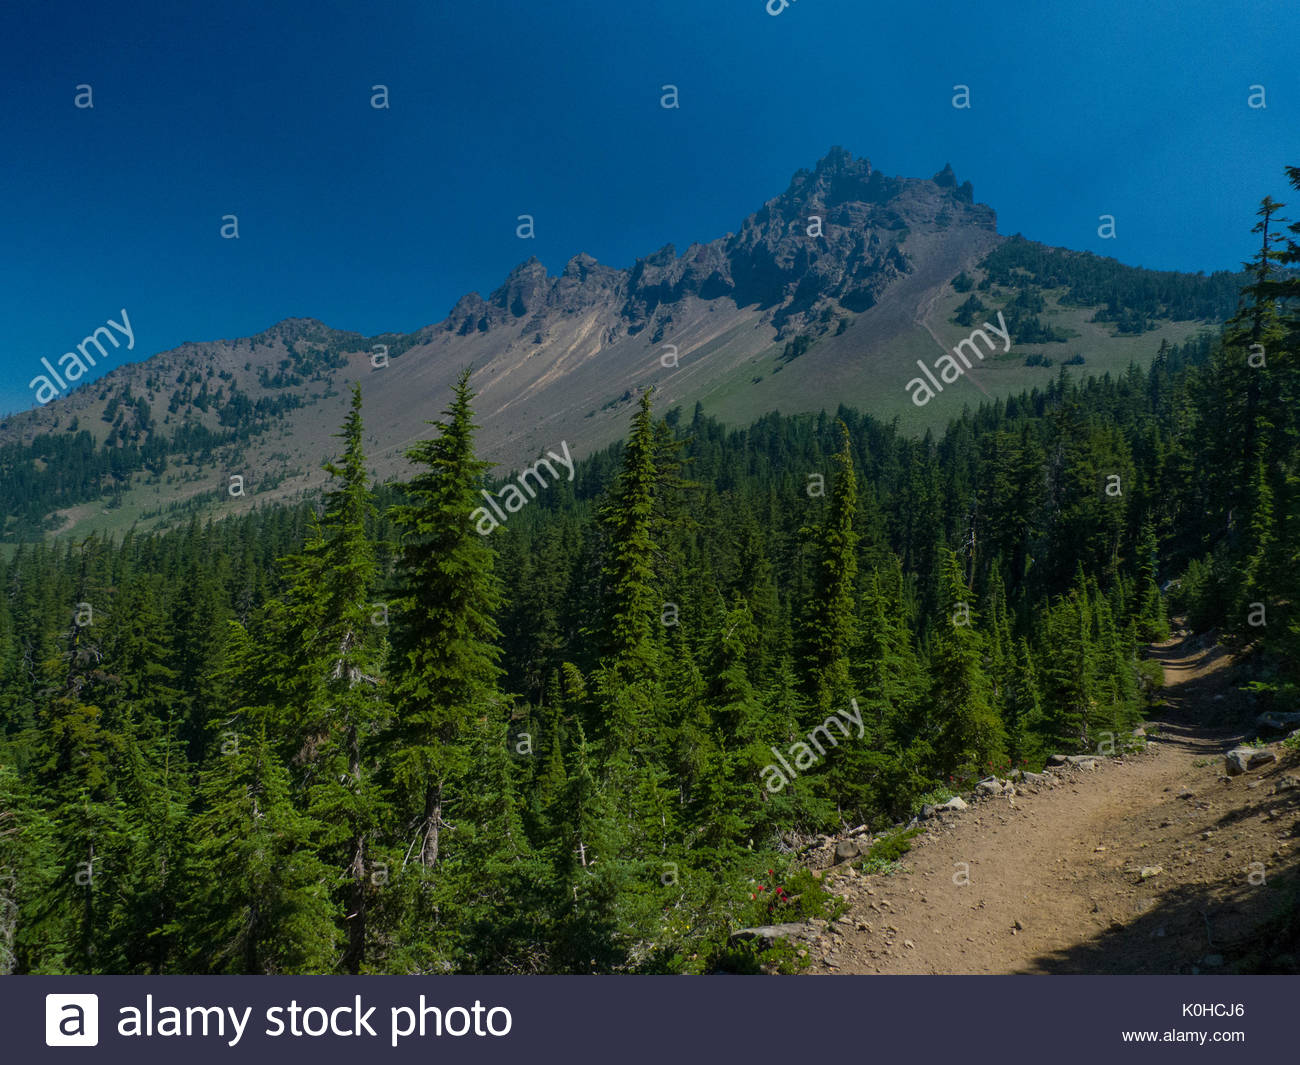 Three Finger Jack seen from the Pacific Crest Trail, Mount Jefferson Wilderness, Willamette National Forest, Linn County, Oregon, USA - Stock Image